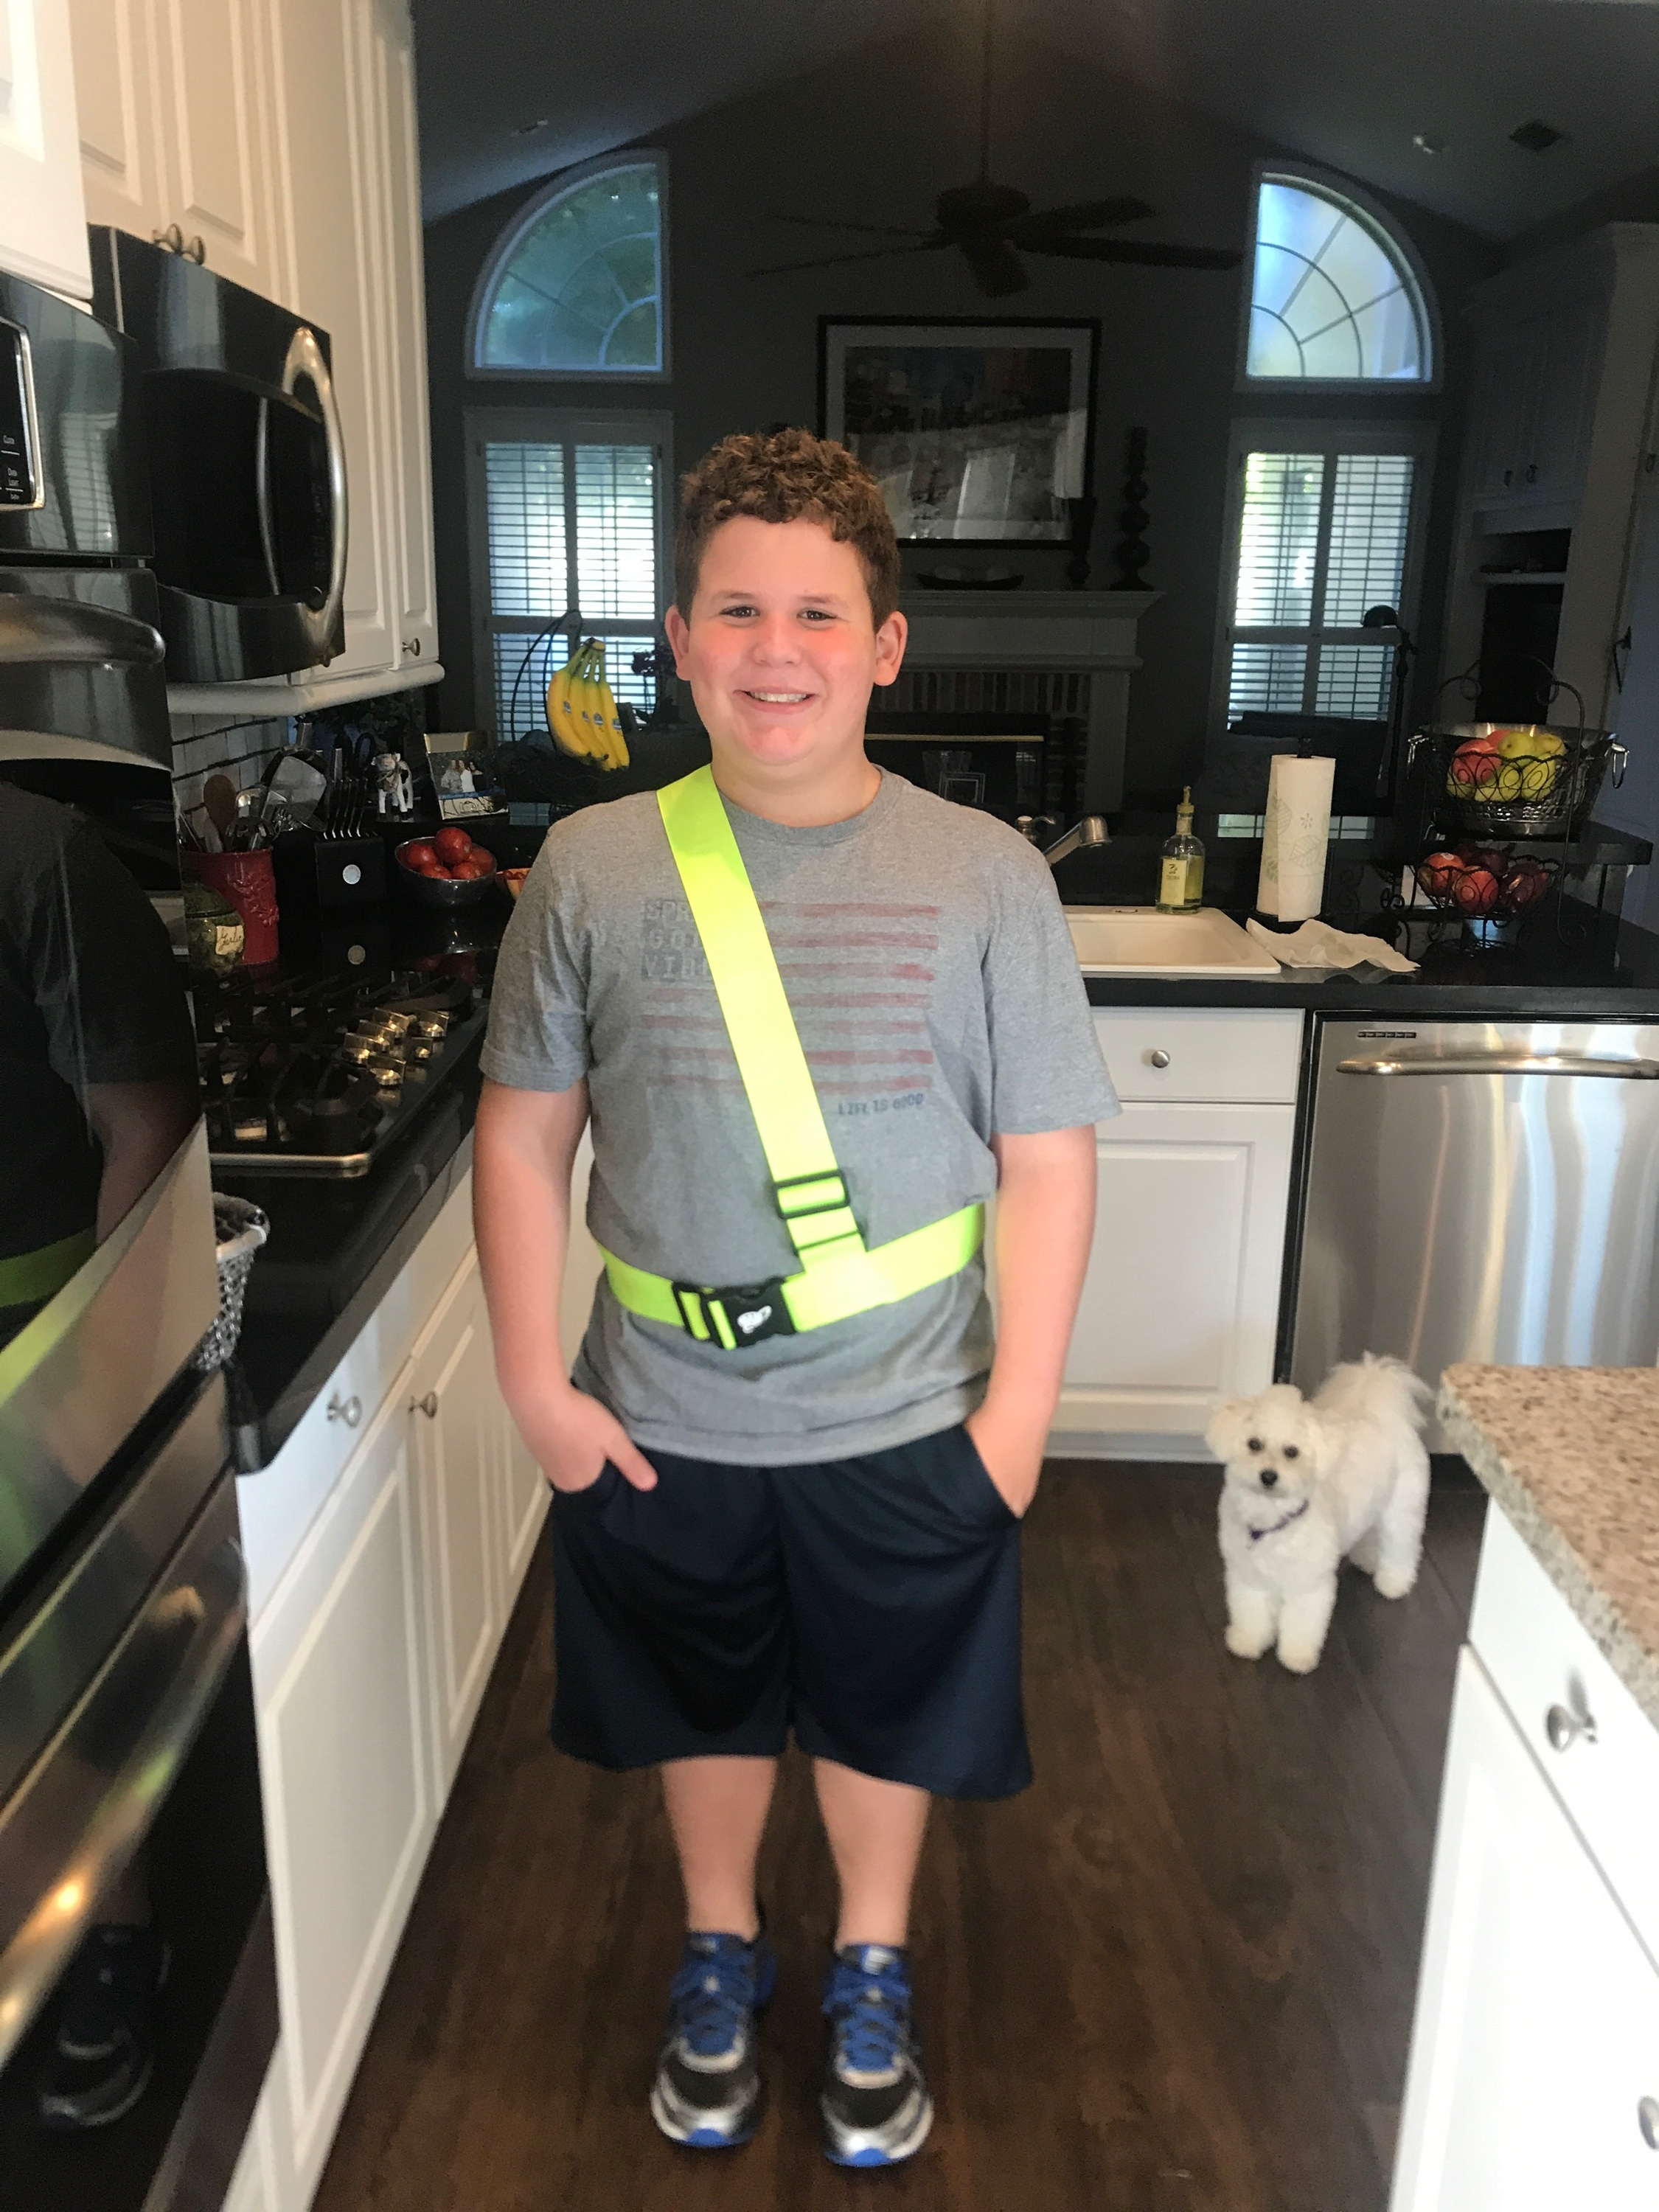 Adam's first day of 5th grade. He is excited to be a safety patrol. I love seeing him so happy.